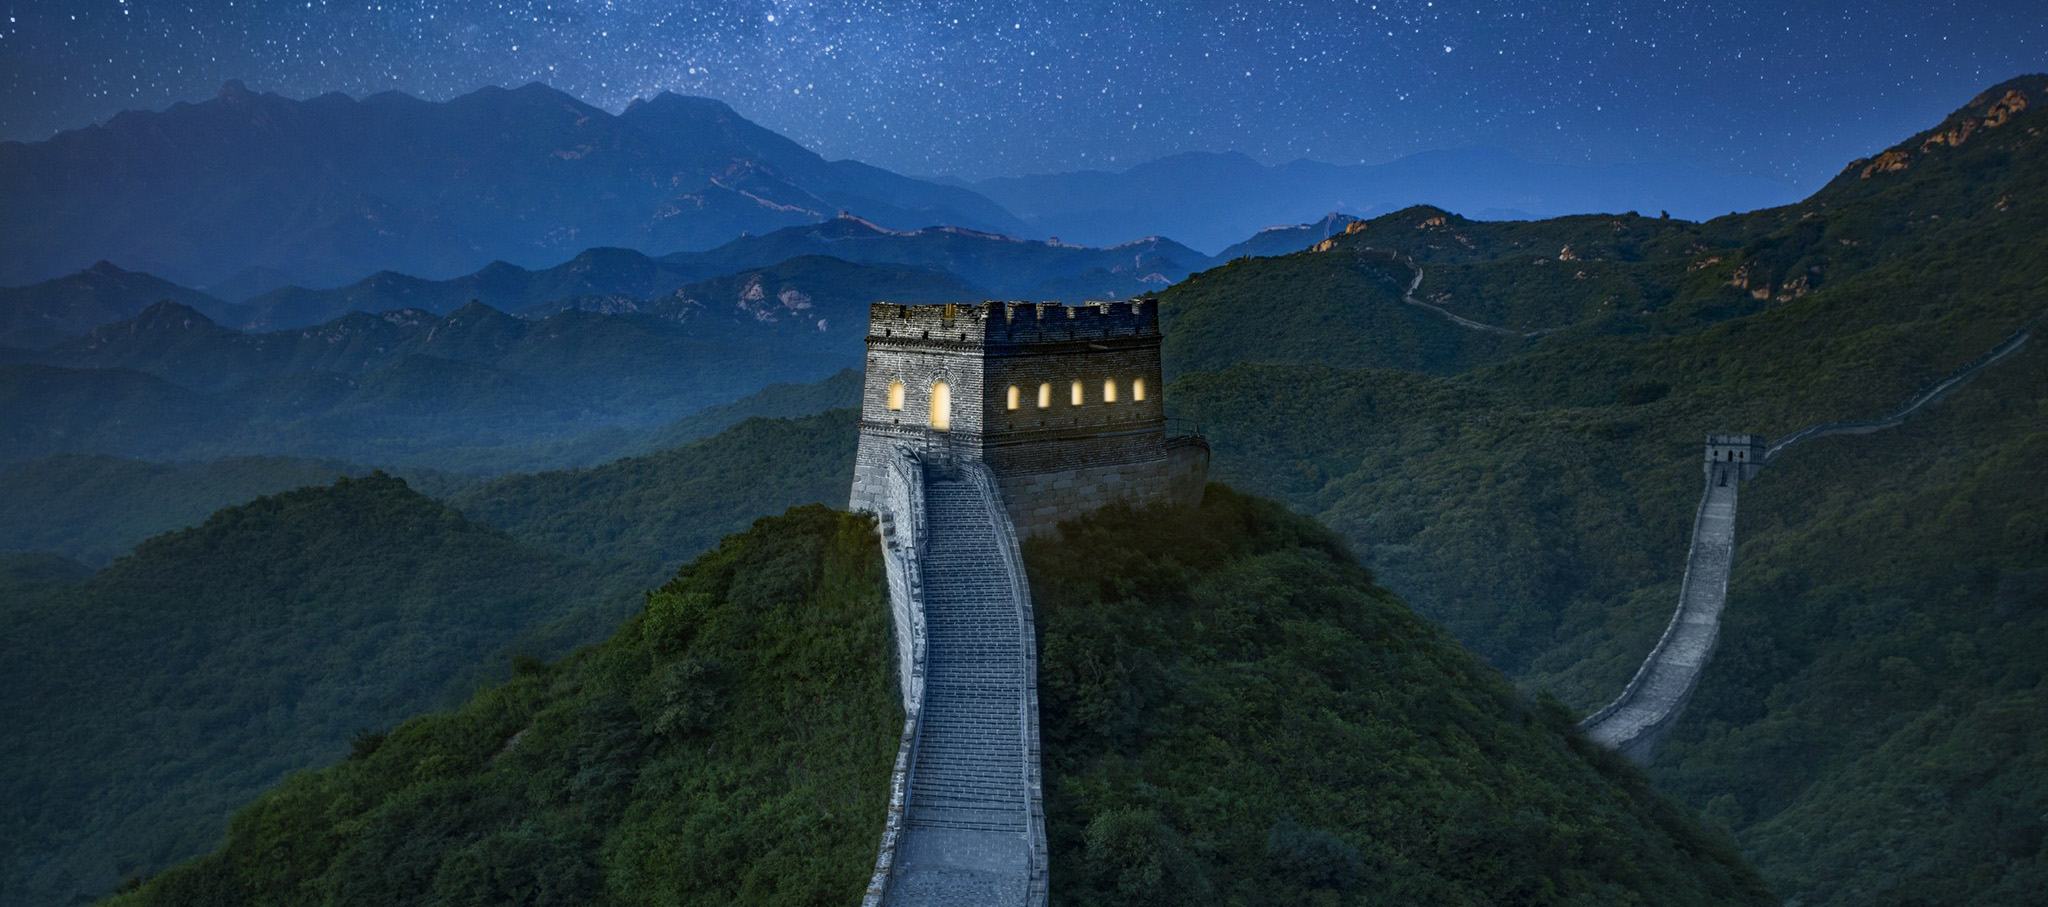 A Night on the Great Wall of China, Courtesy of Airbnb. Image courtesy of Airbnb